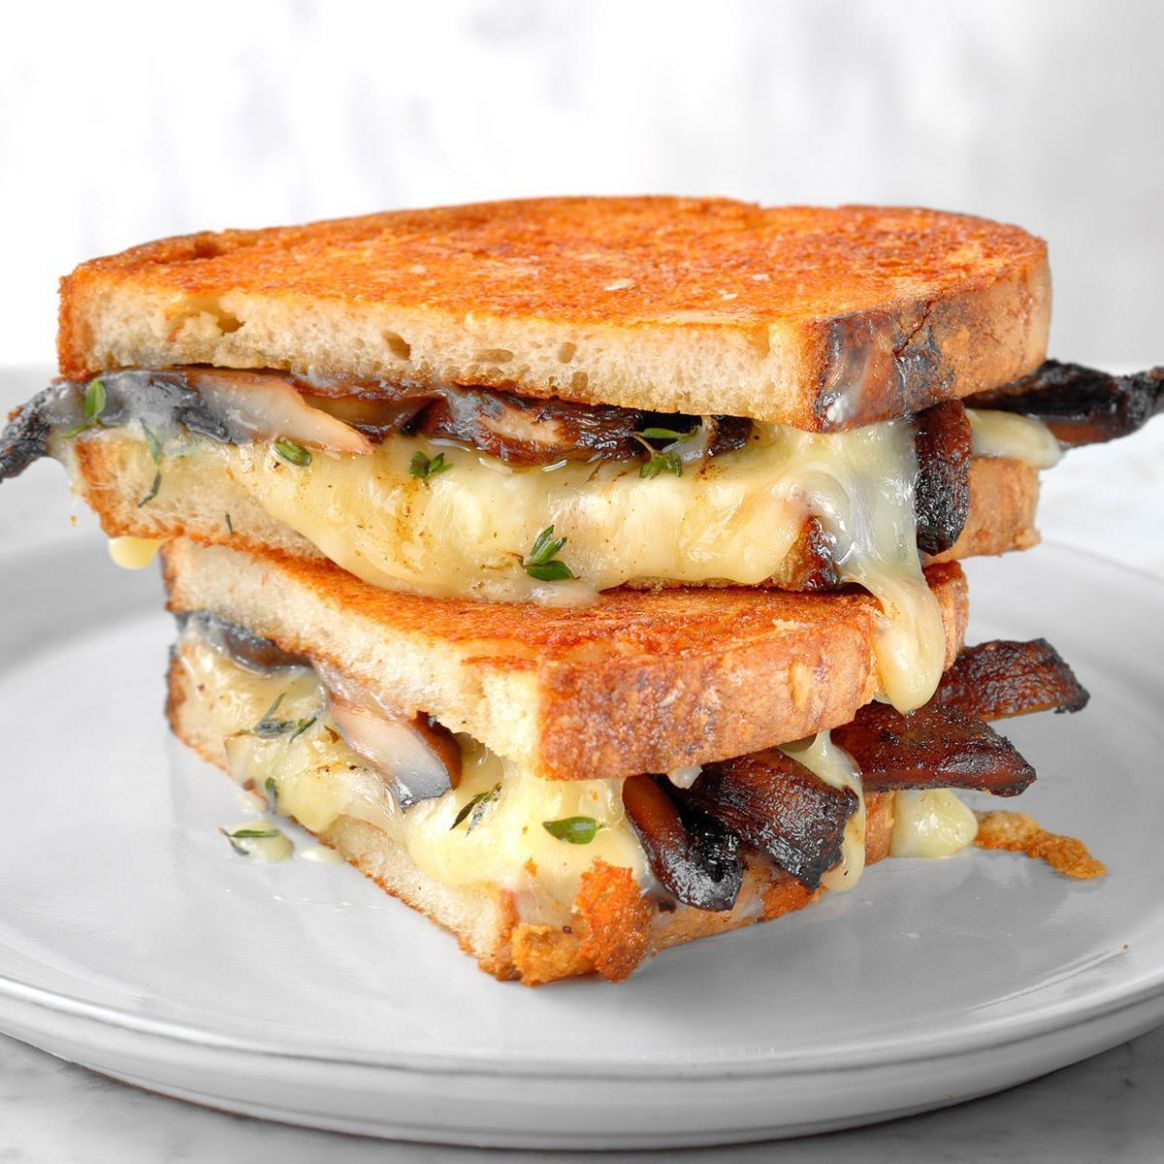 Grilled Cheese and Mushroom Sandwich - Sandwich Recipes Grilled